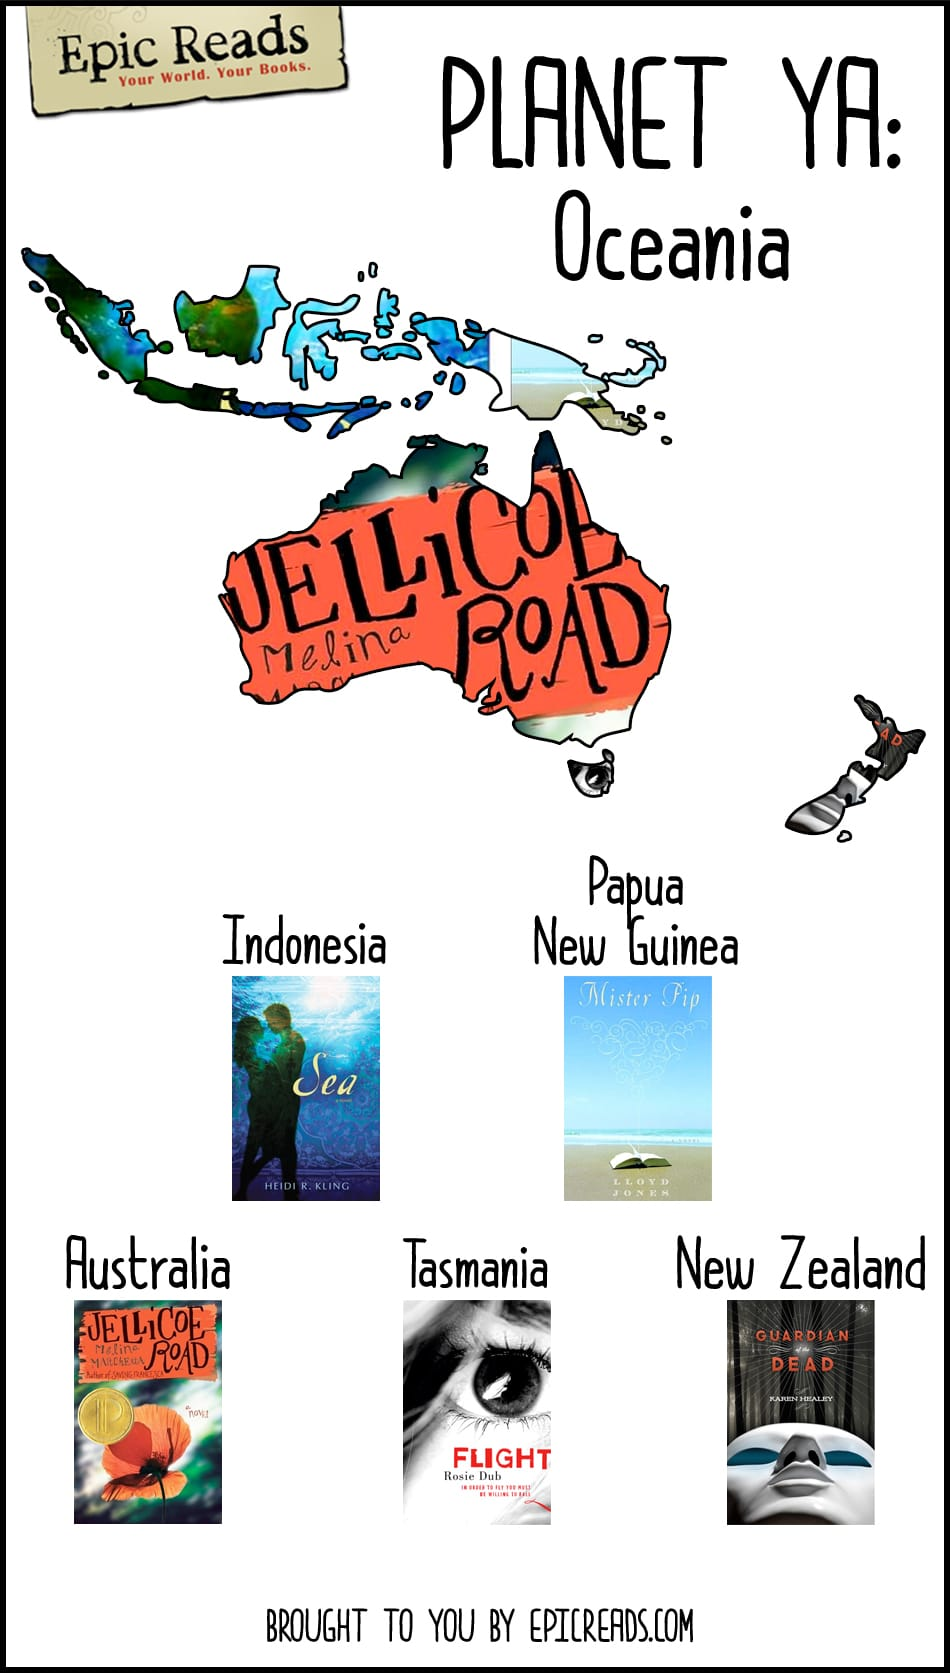 Read your way across #PlanetYA with this map created by Epic Reads! How many Oceania books have you read?